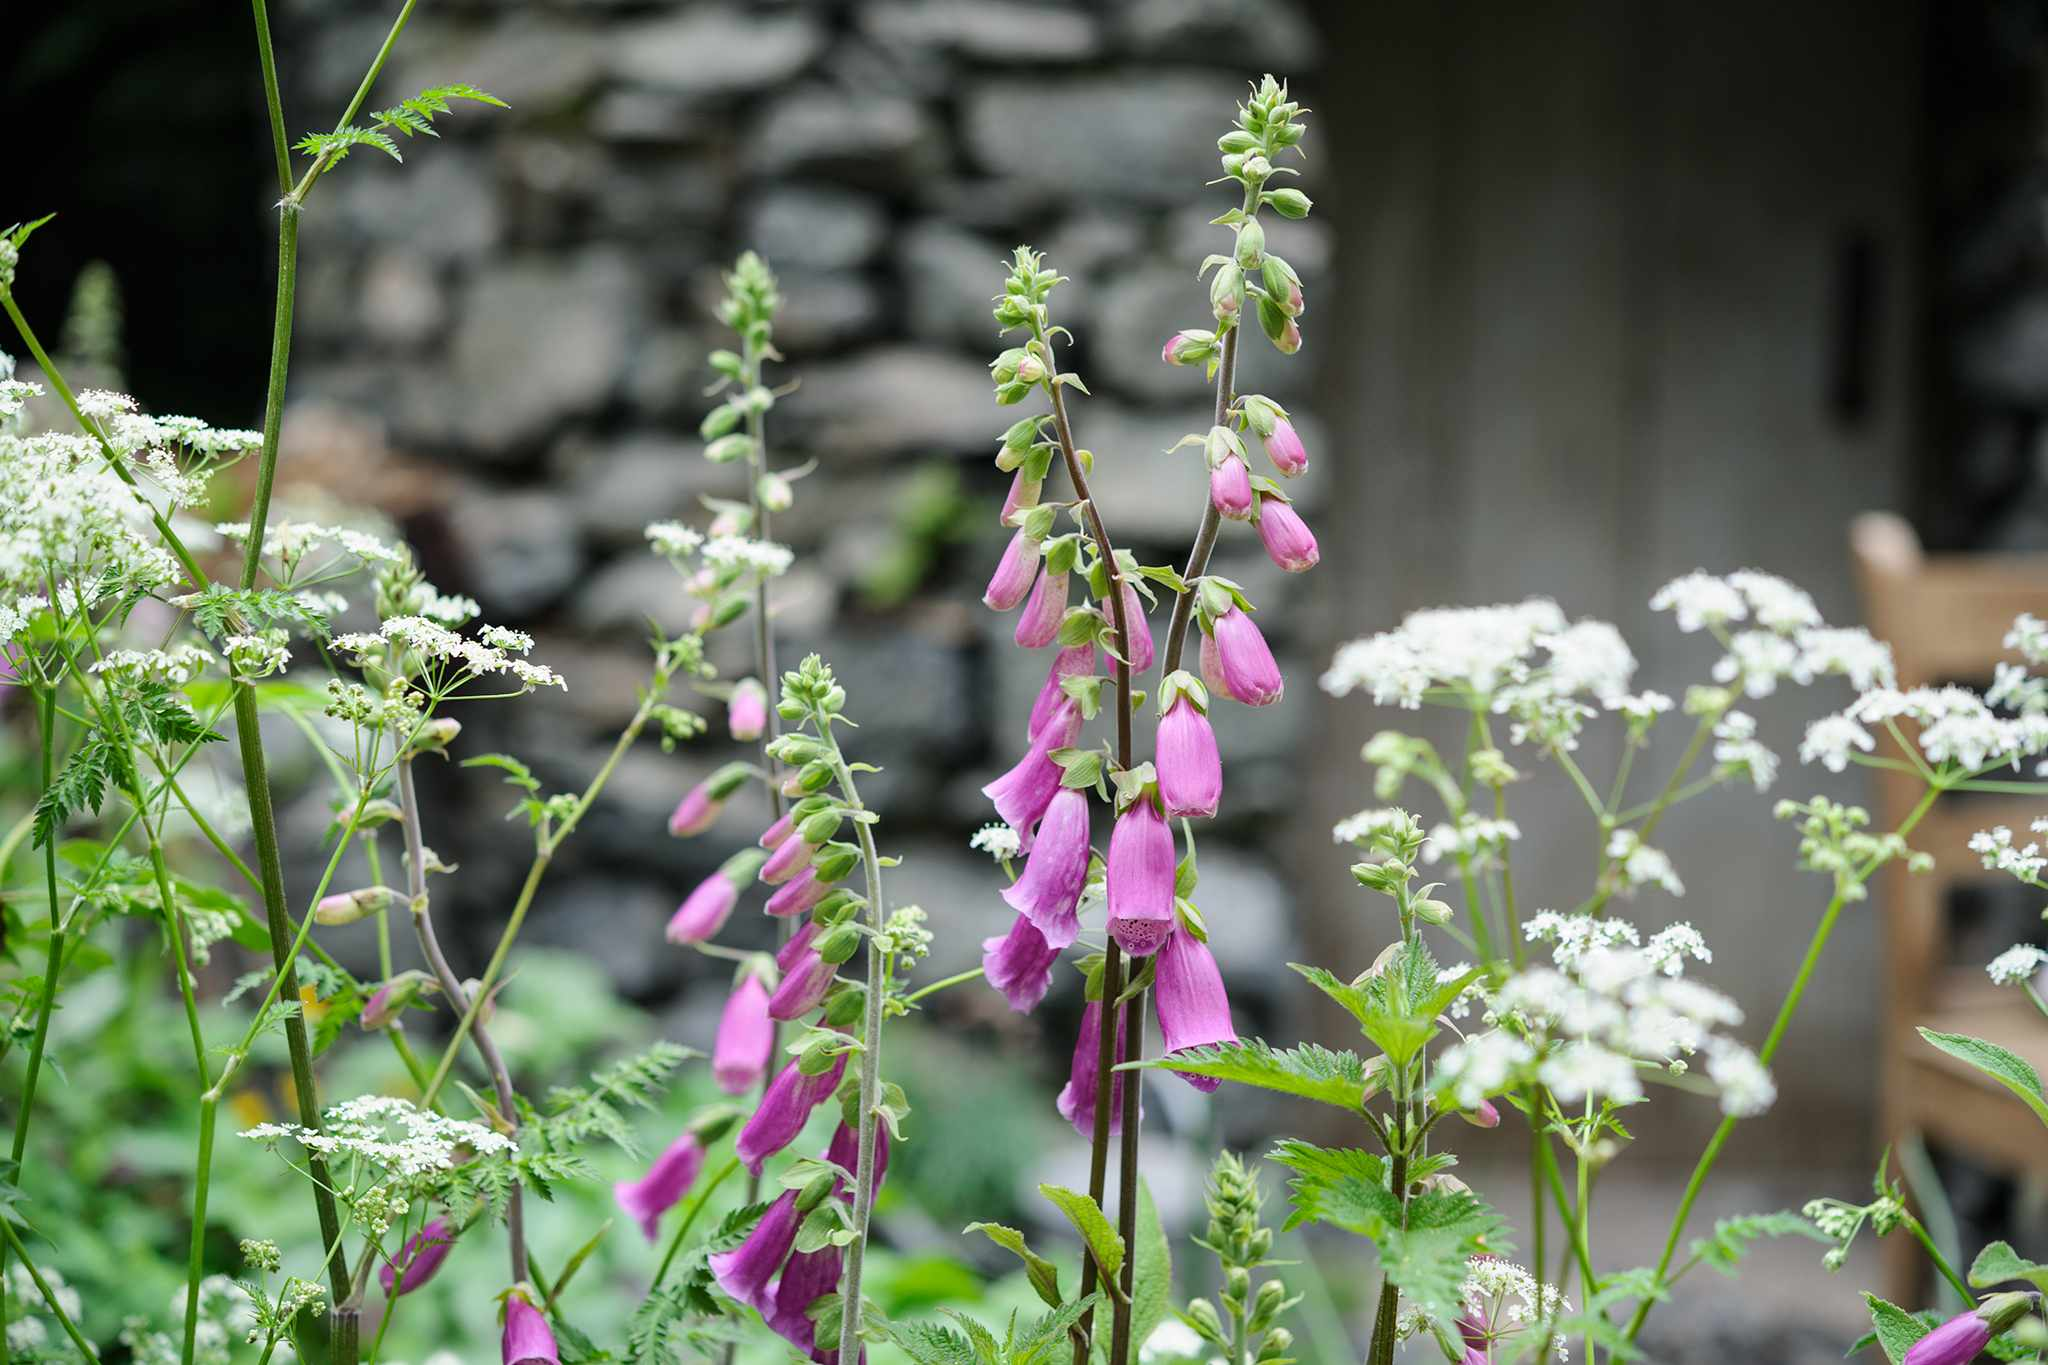 Foxgloves and cow parsley